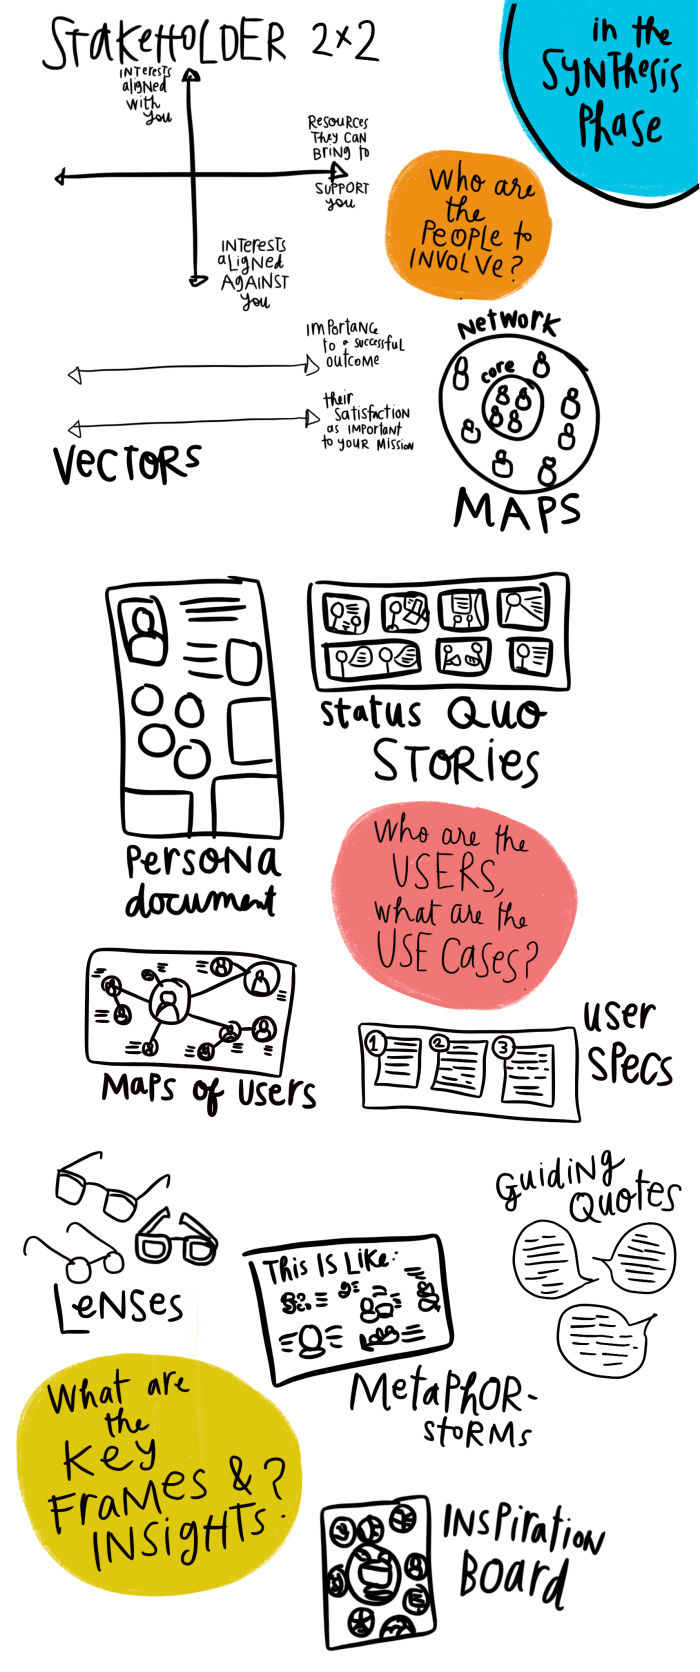 Design Process - Synthesis tools and deliverables